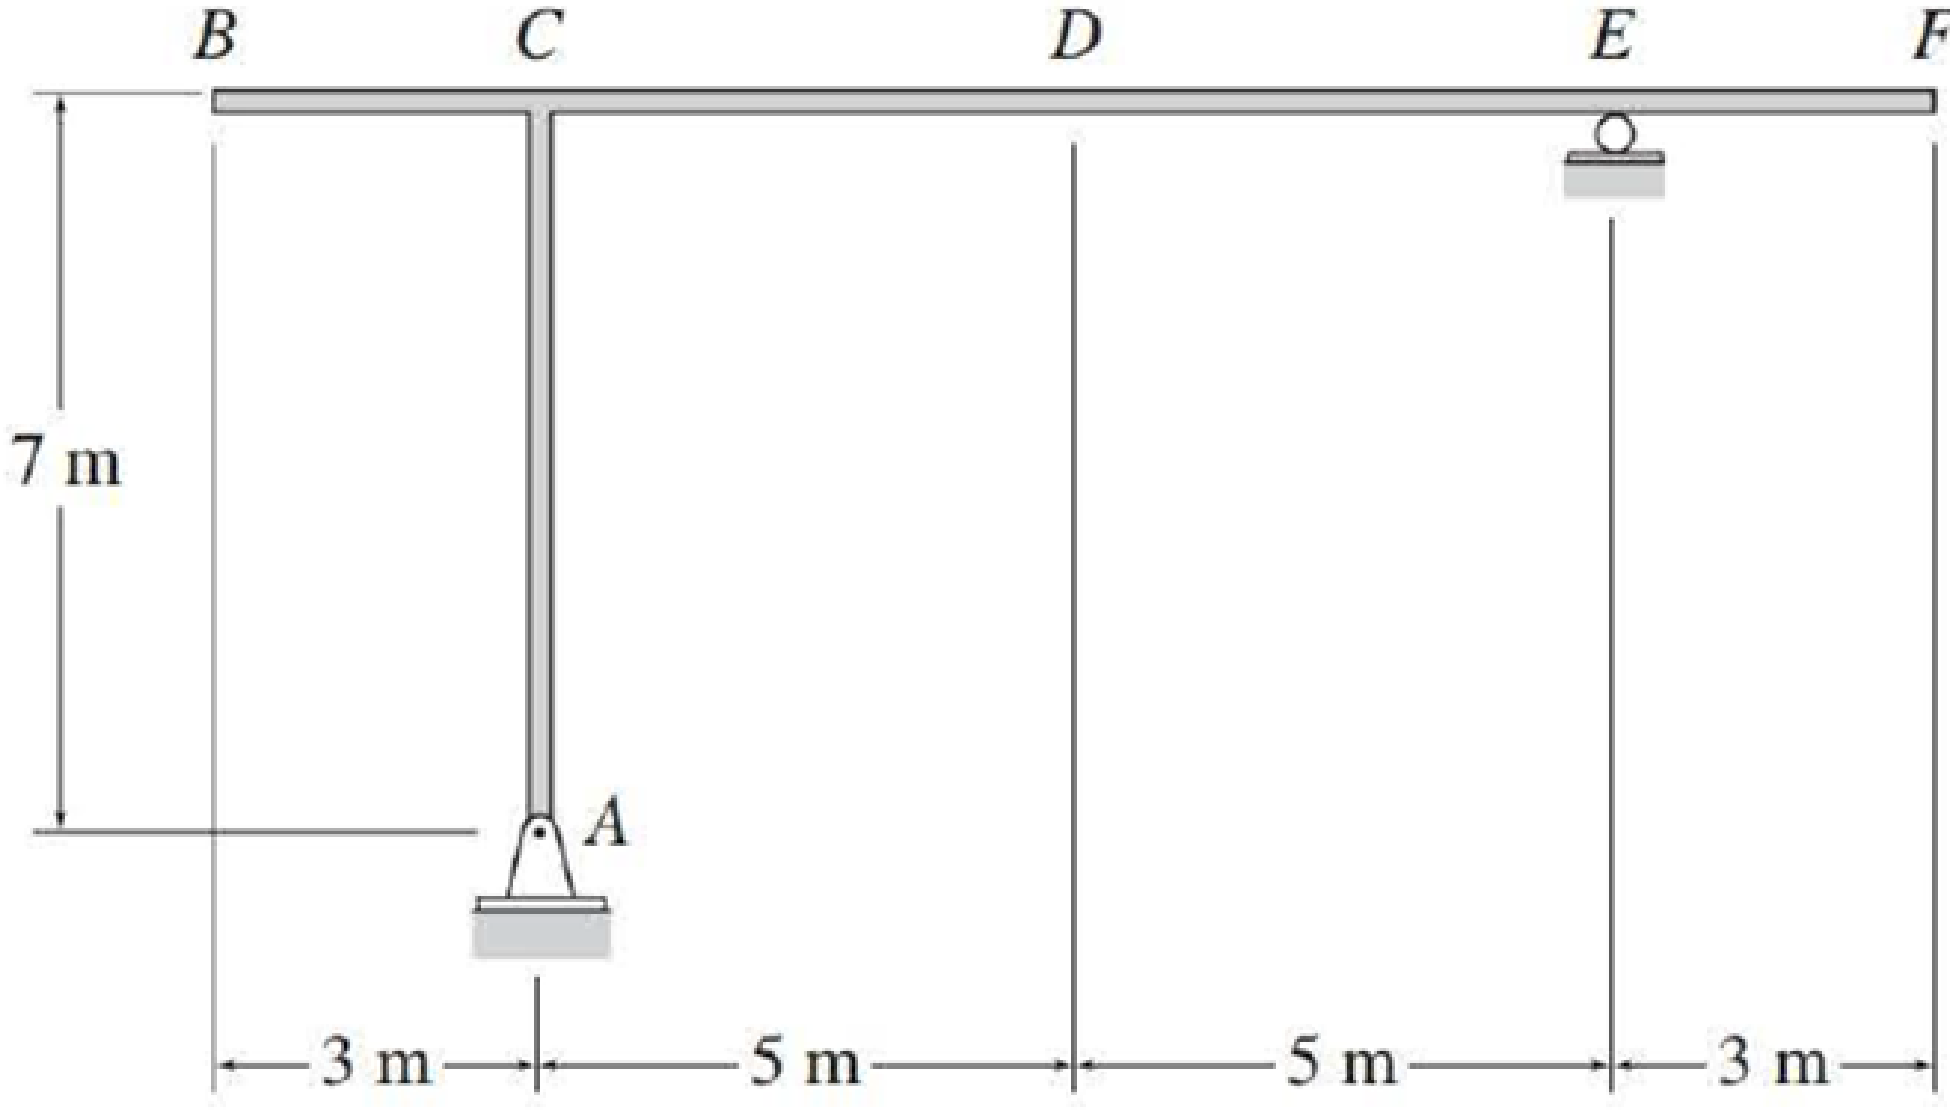 Chapter 8, Problem 16P, Draw the influence lines for the vertical reactions at supports A and E and the shear and bending